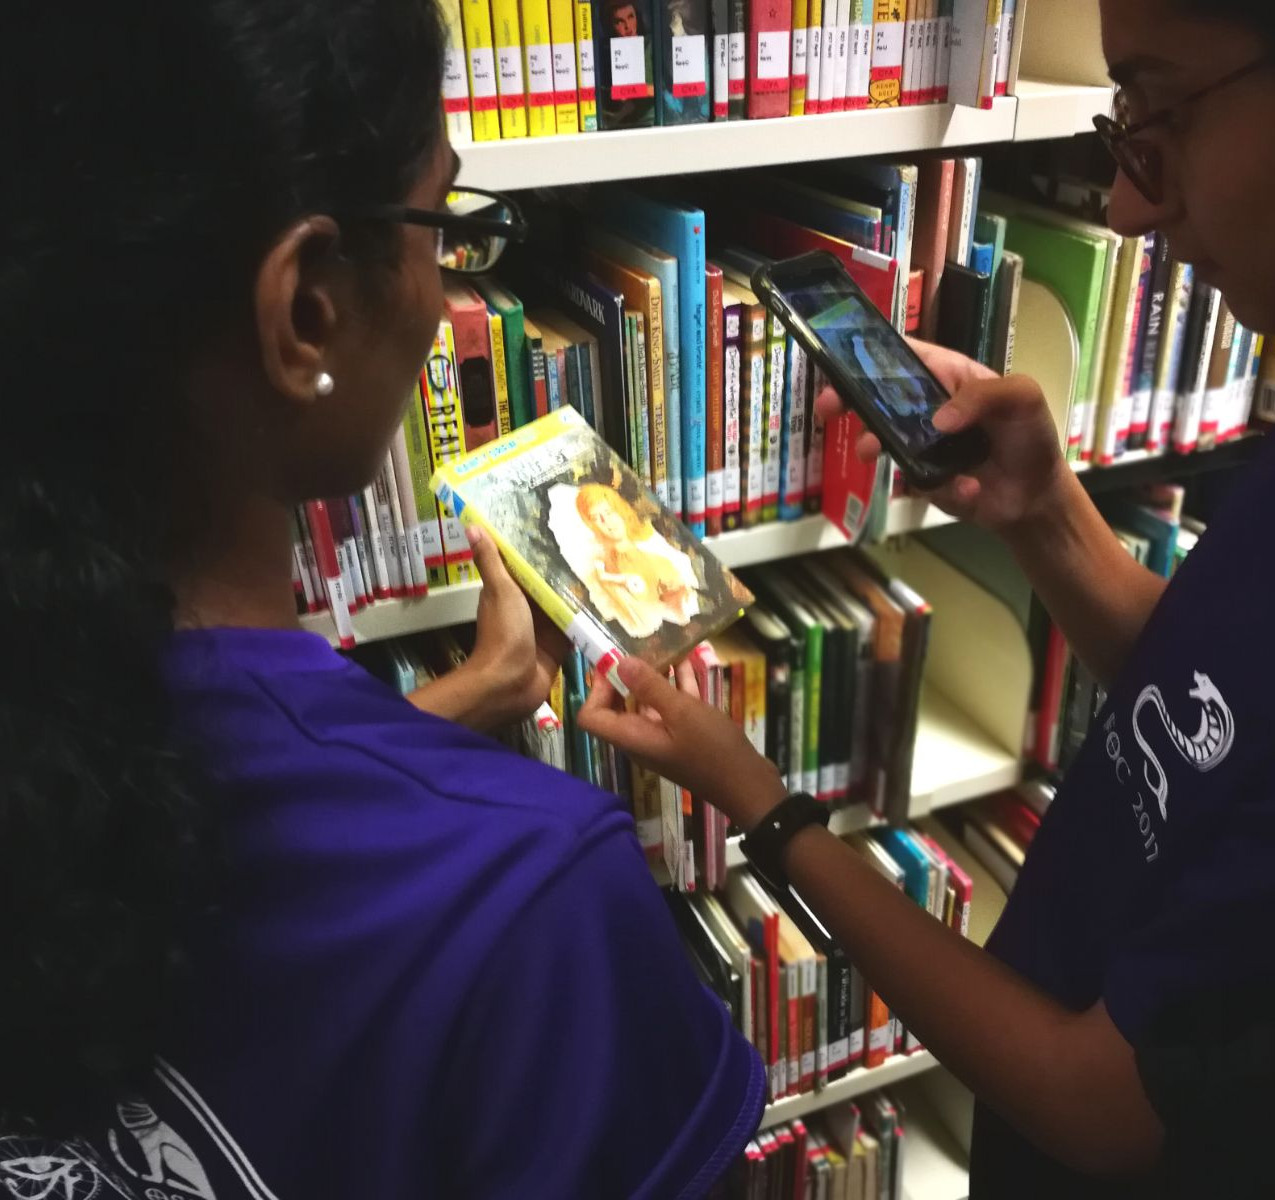 Looking for books in Reserves